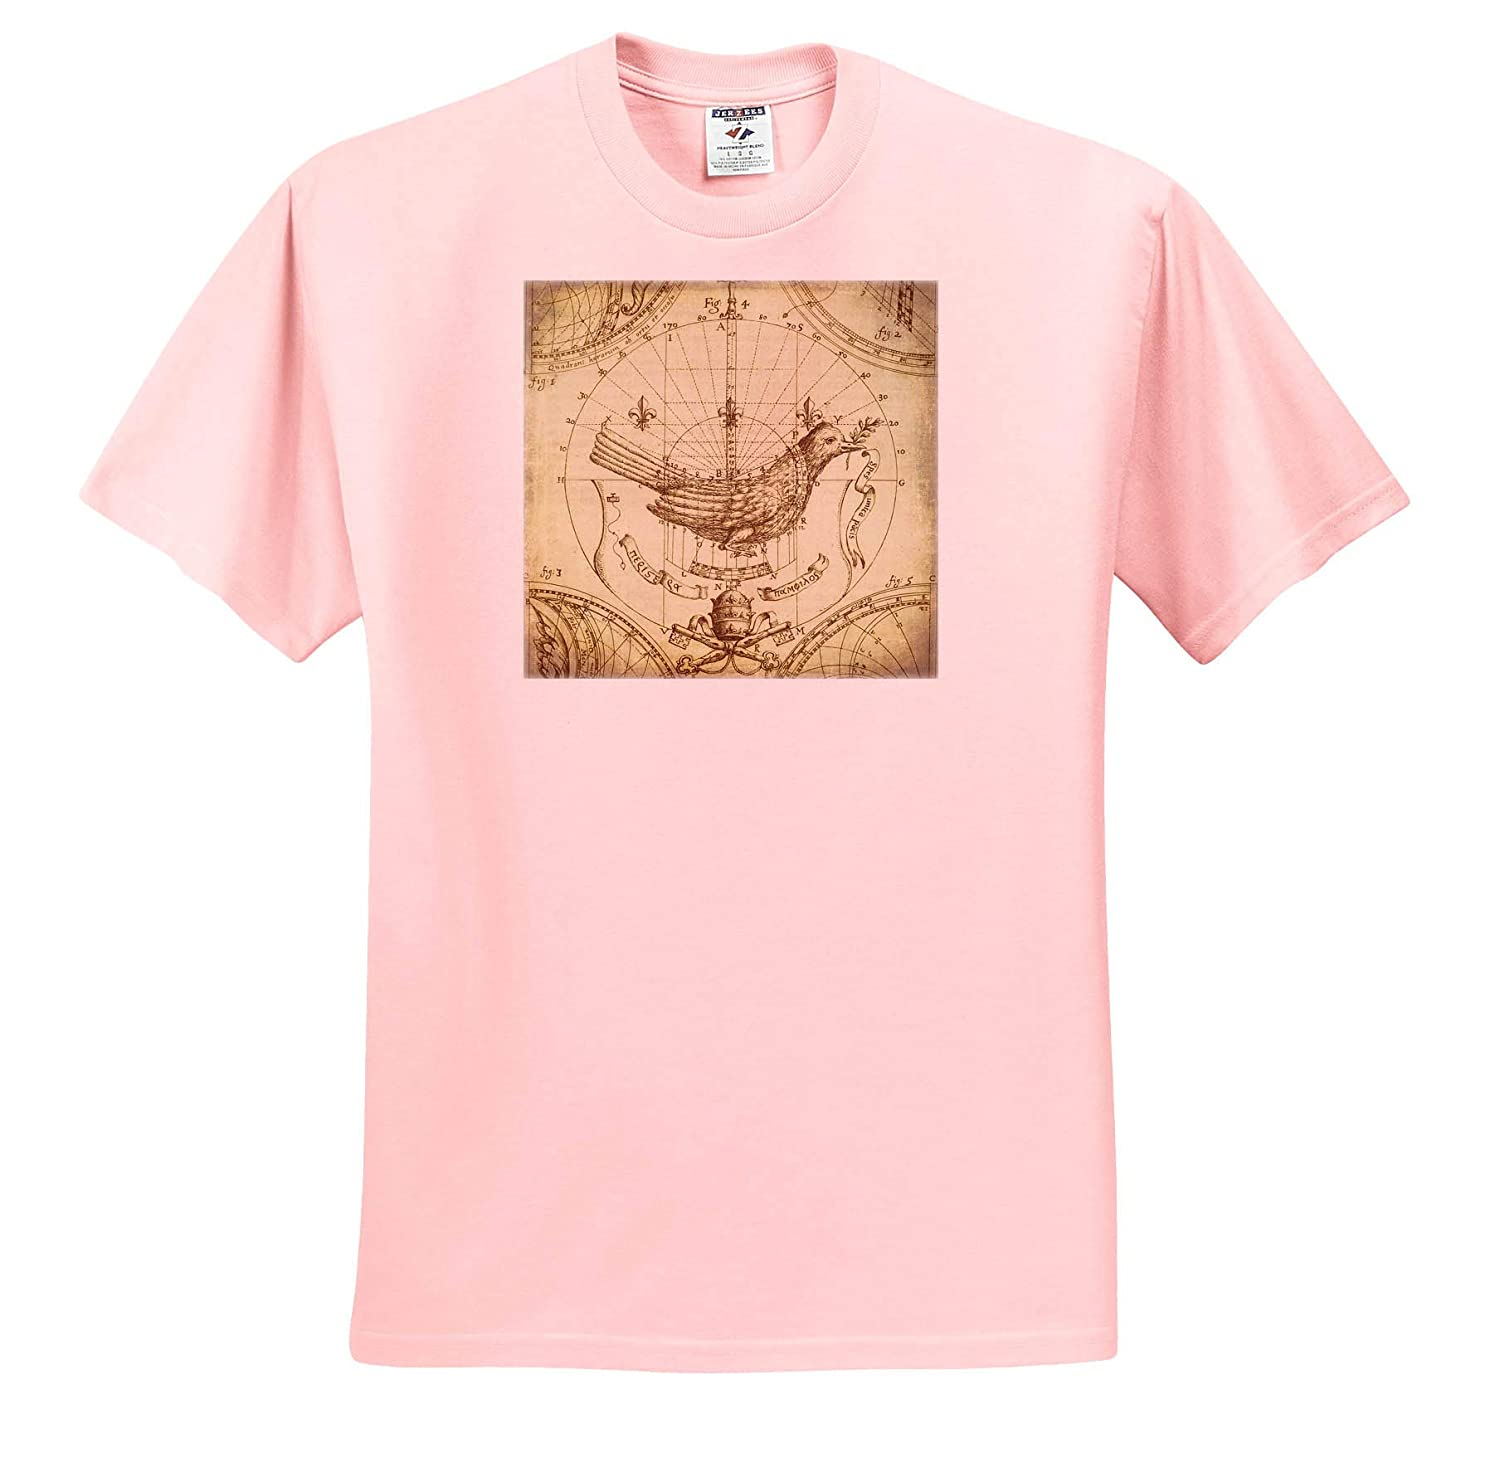 Adult T-Shirt XL 3dRose Andrea Haase Vintage Illustration Vintage Illustration Drawing with Charts and Bird ts/_318581